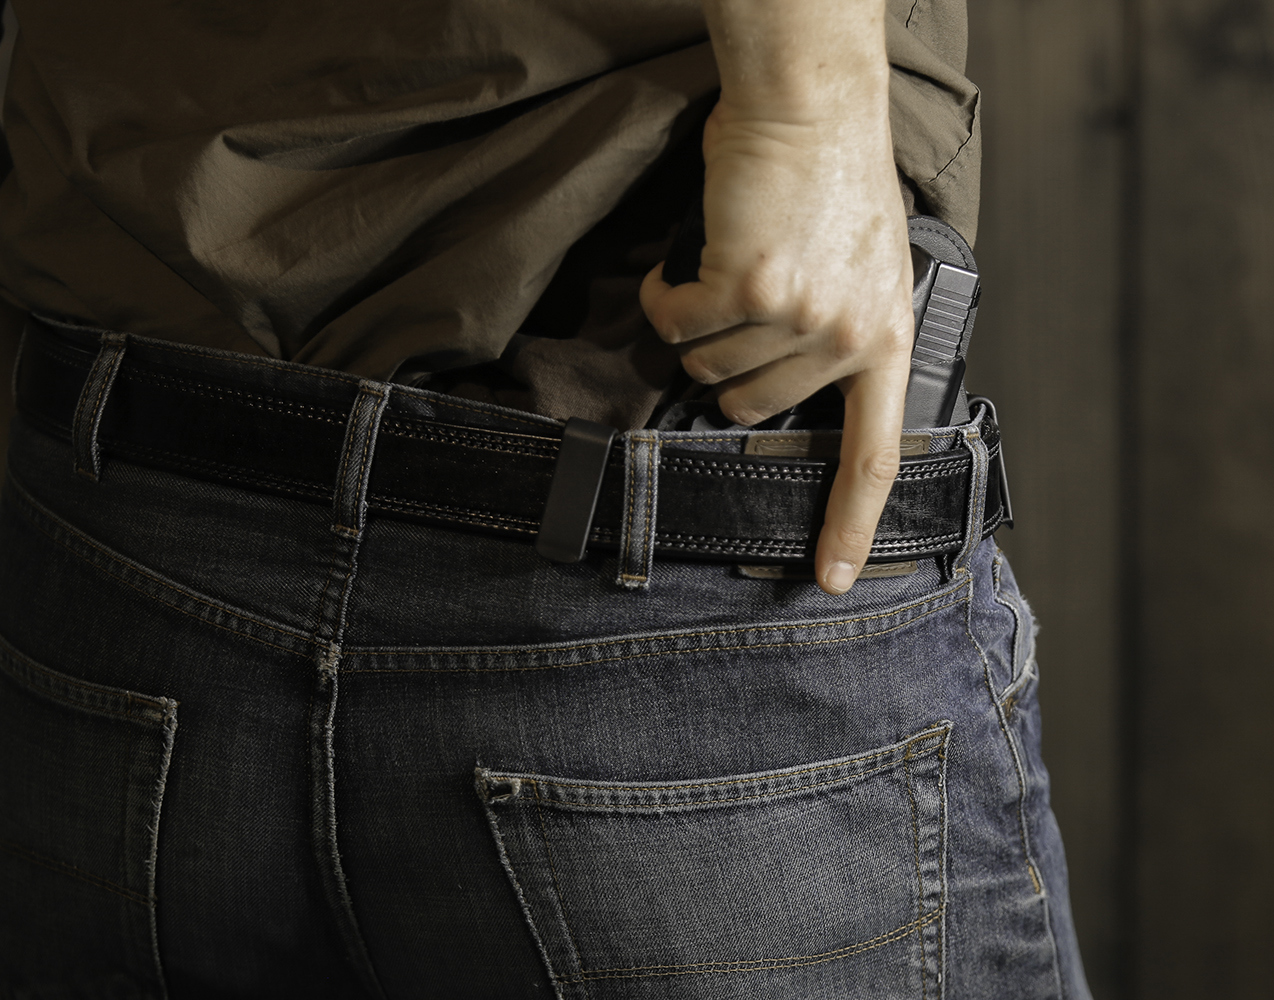 Intermediate Pistol - The Fundamentals of Conceal Carry - 301 - Rice Lake